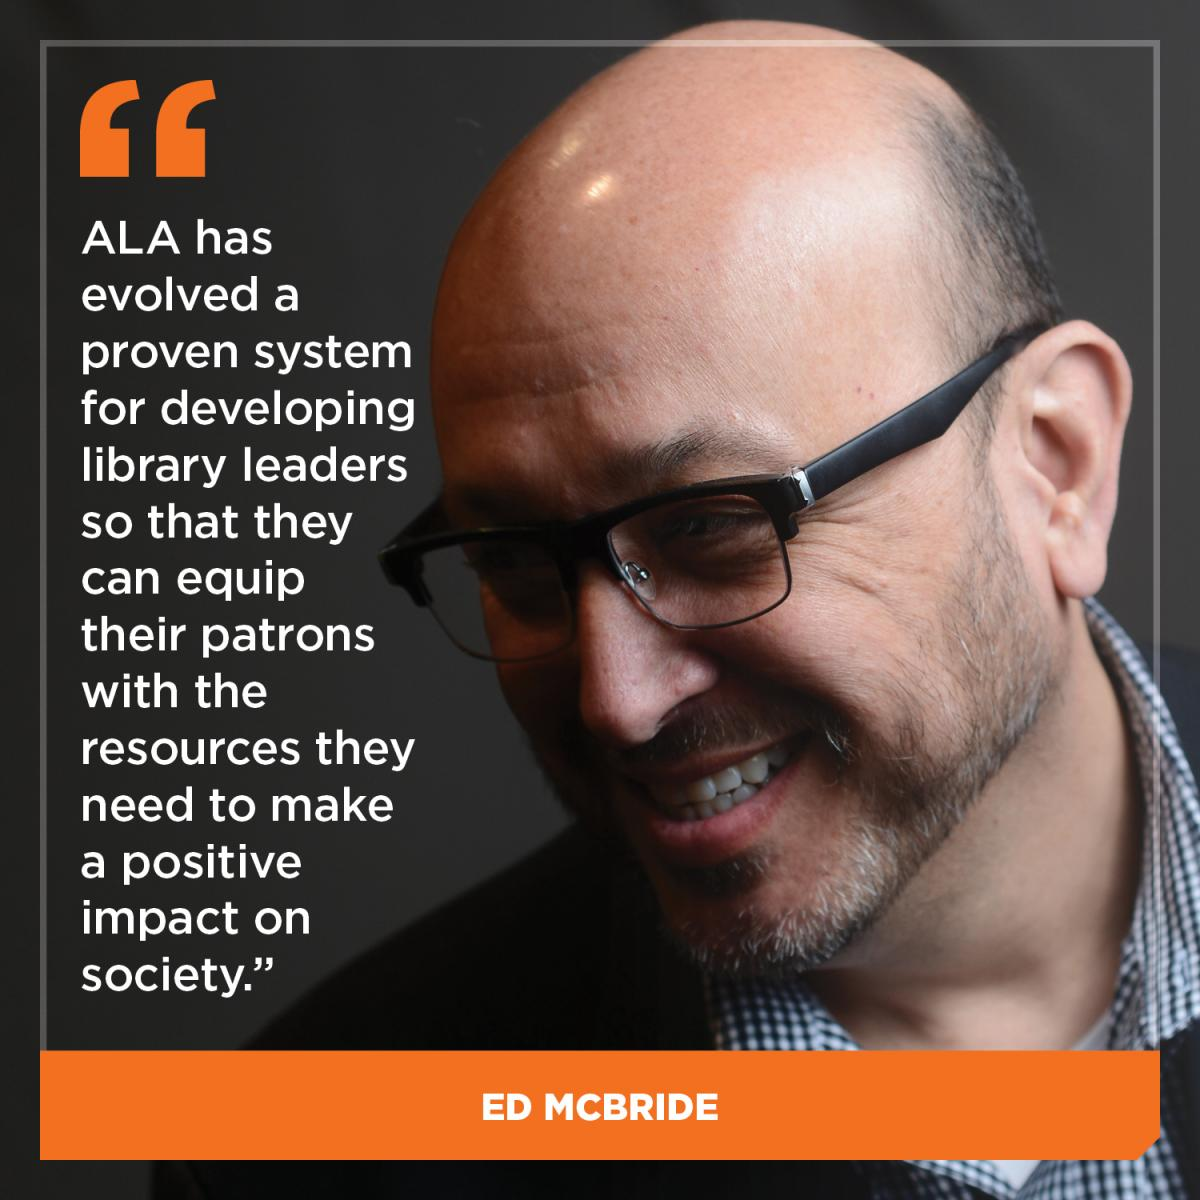 ALA has evolved a proven system for developing library leaders so that they can equip their patrons with the resources they need to make a positive impact on society. - Ed McBride